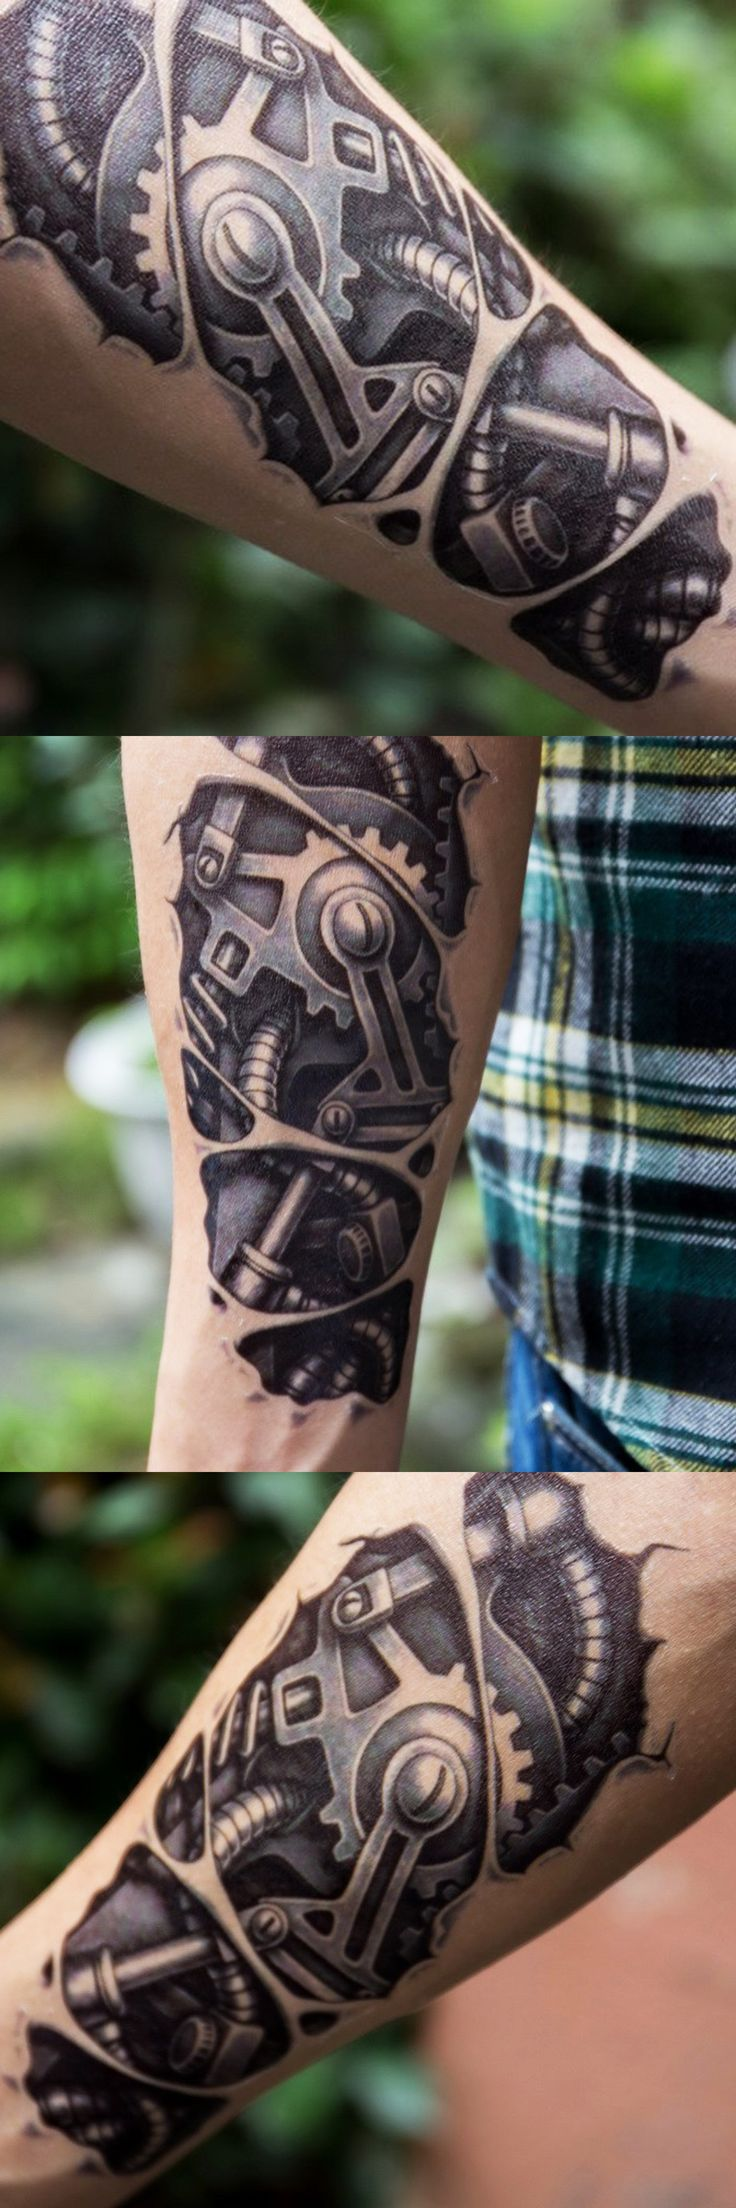 Robot Tattoo Ideas for Women for Men - Bionic Arm Sleeve Tat - Avaliable at MyBodiArt.com